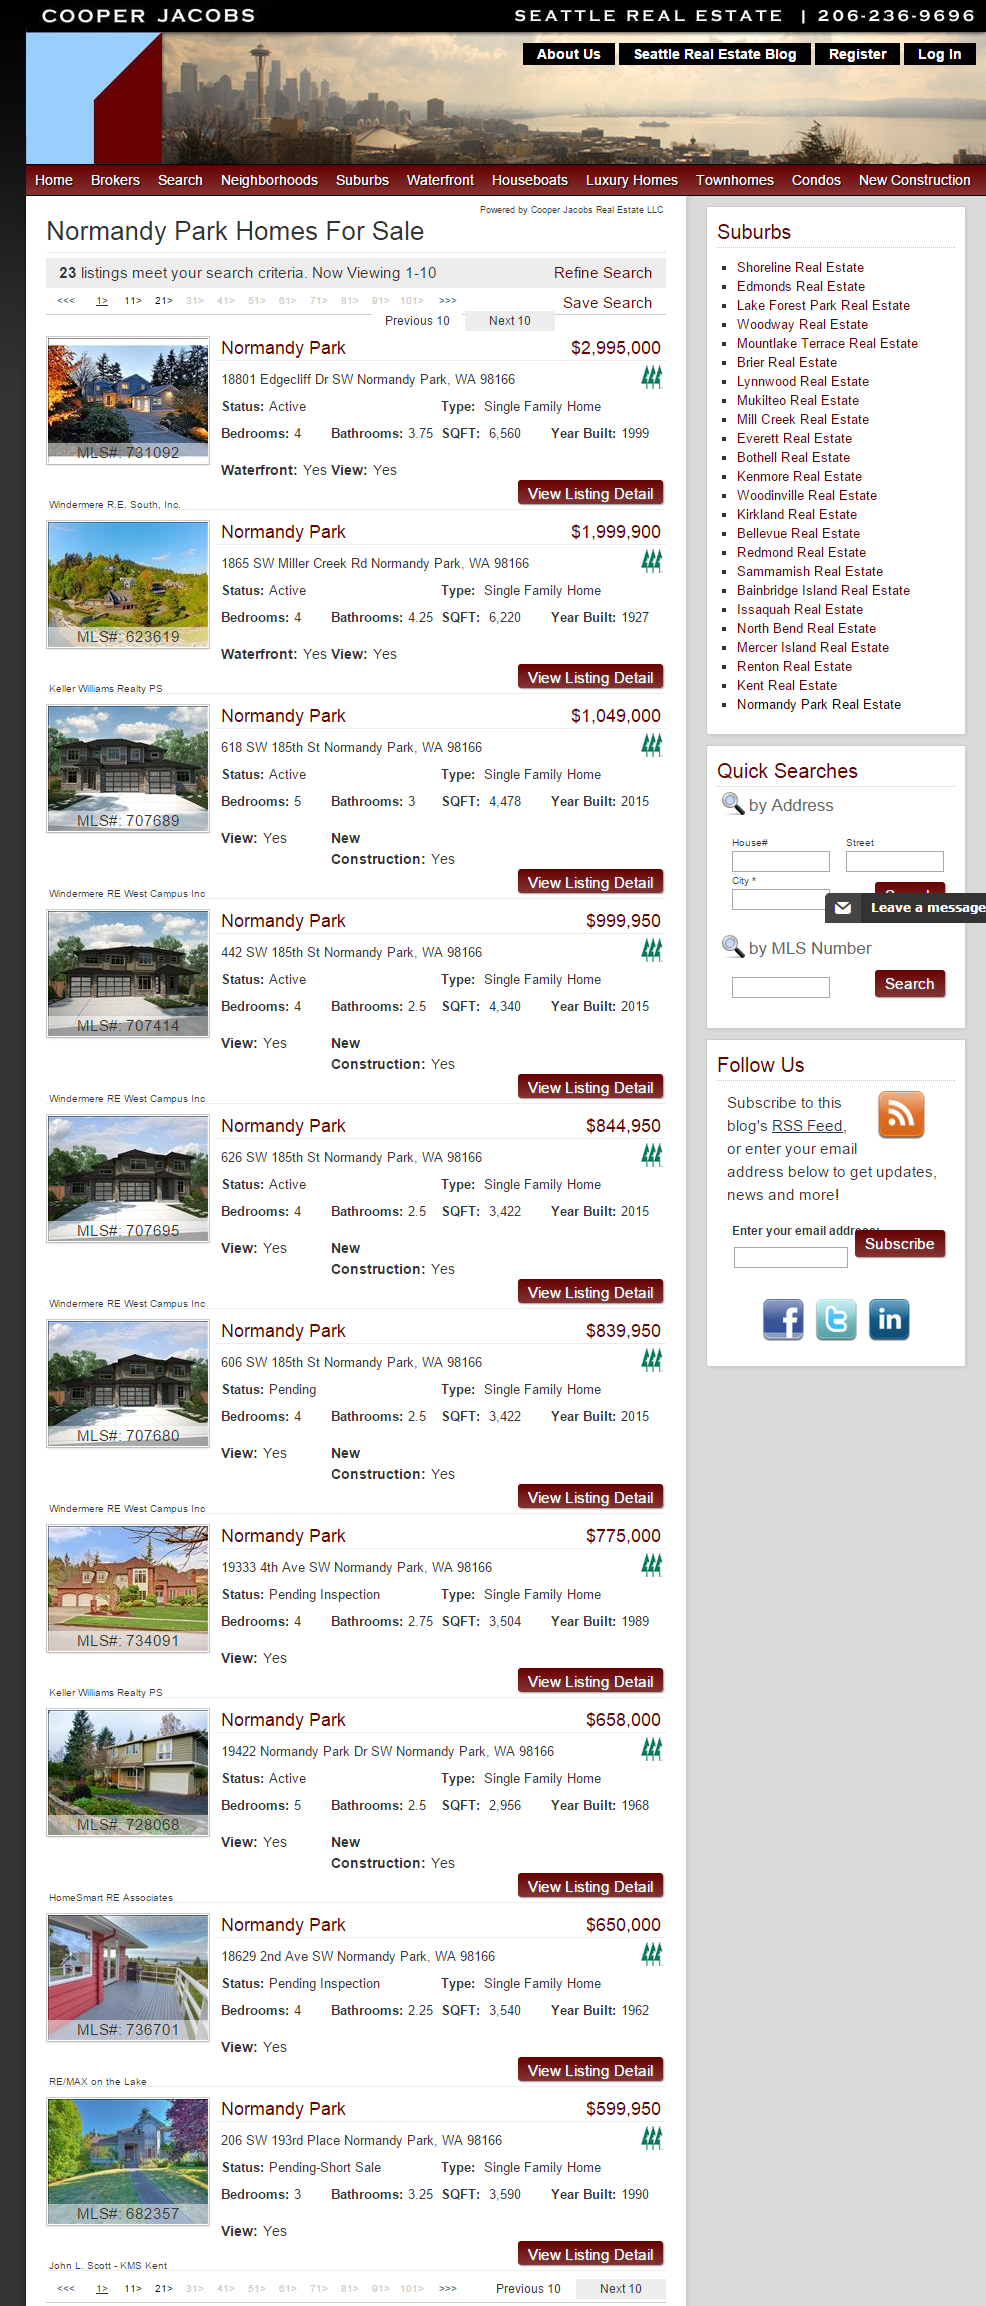 Normandy Park Homes For Sale